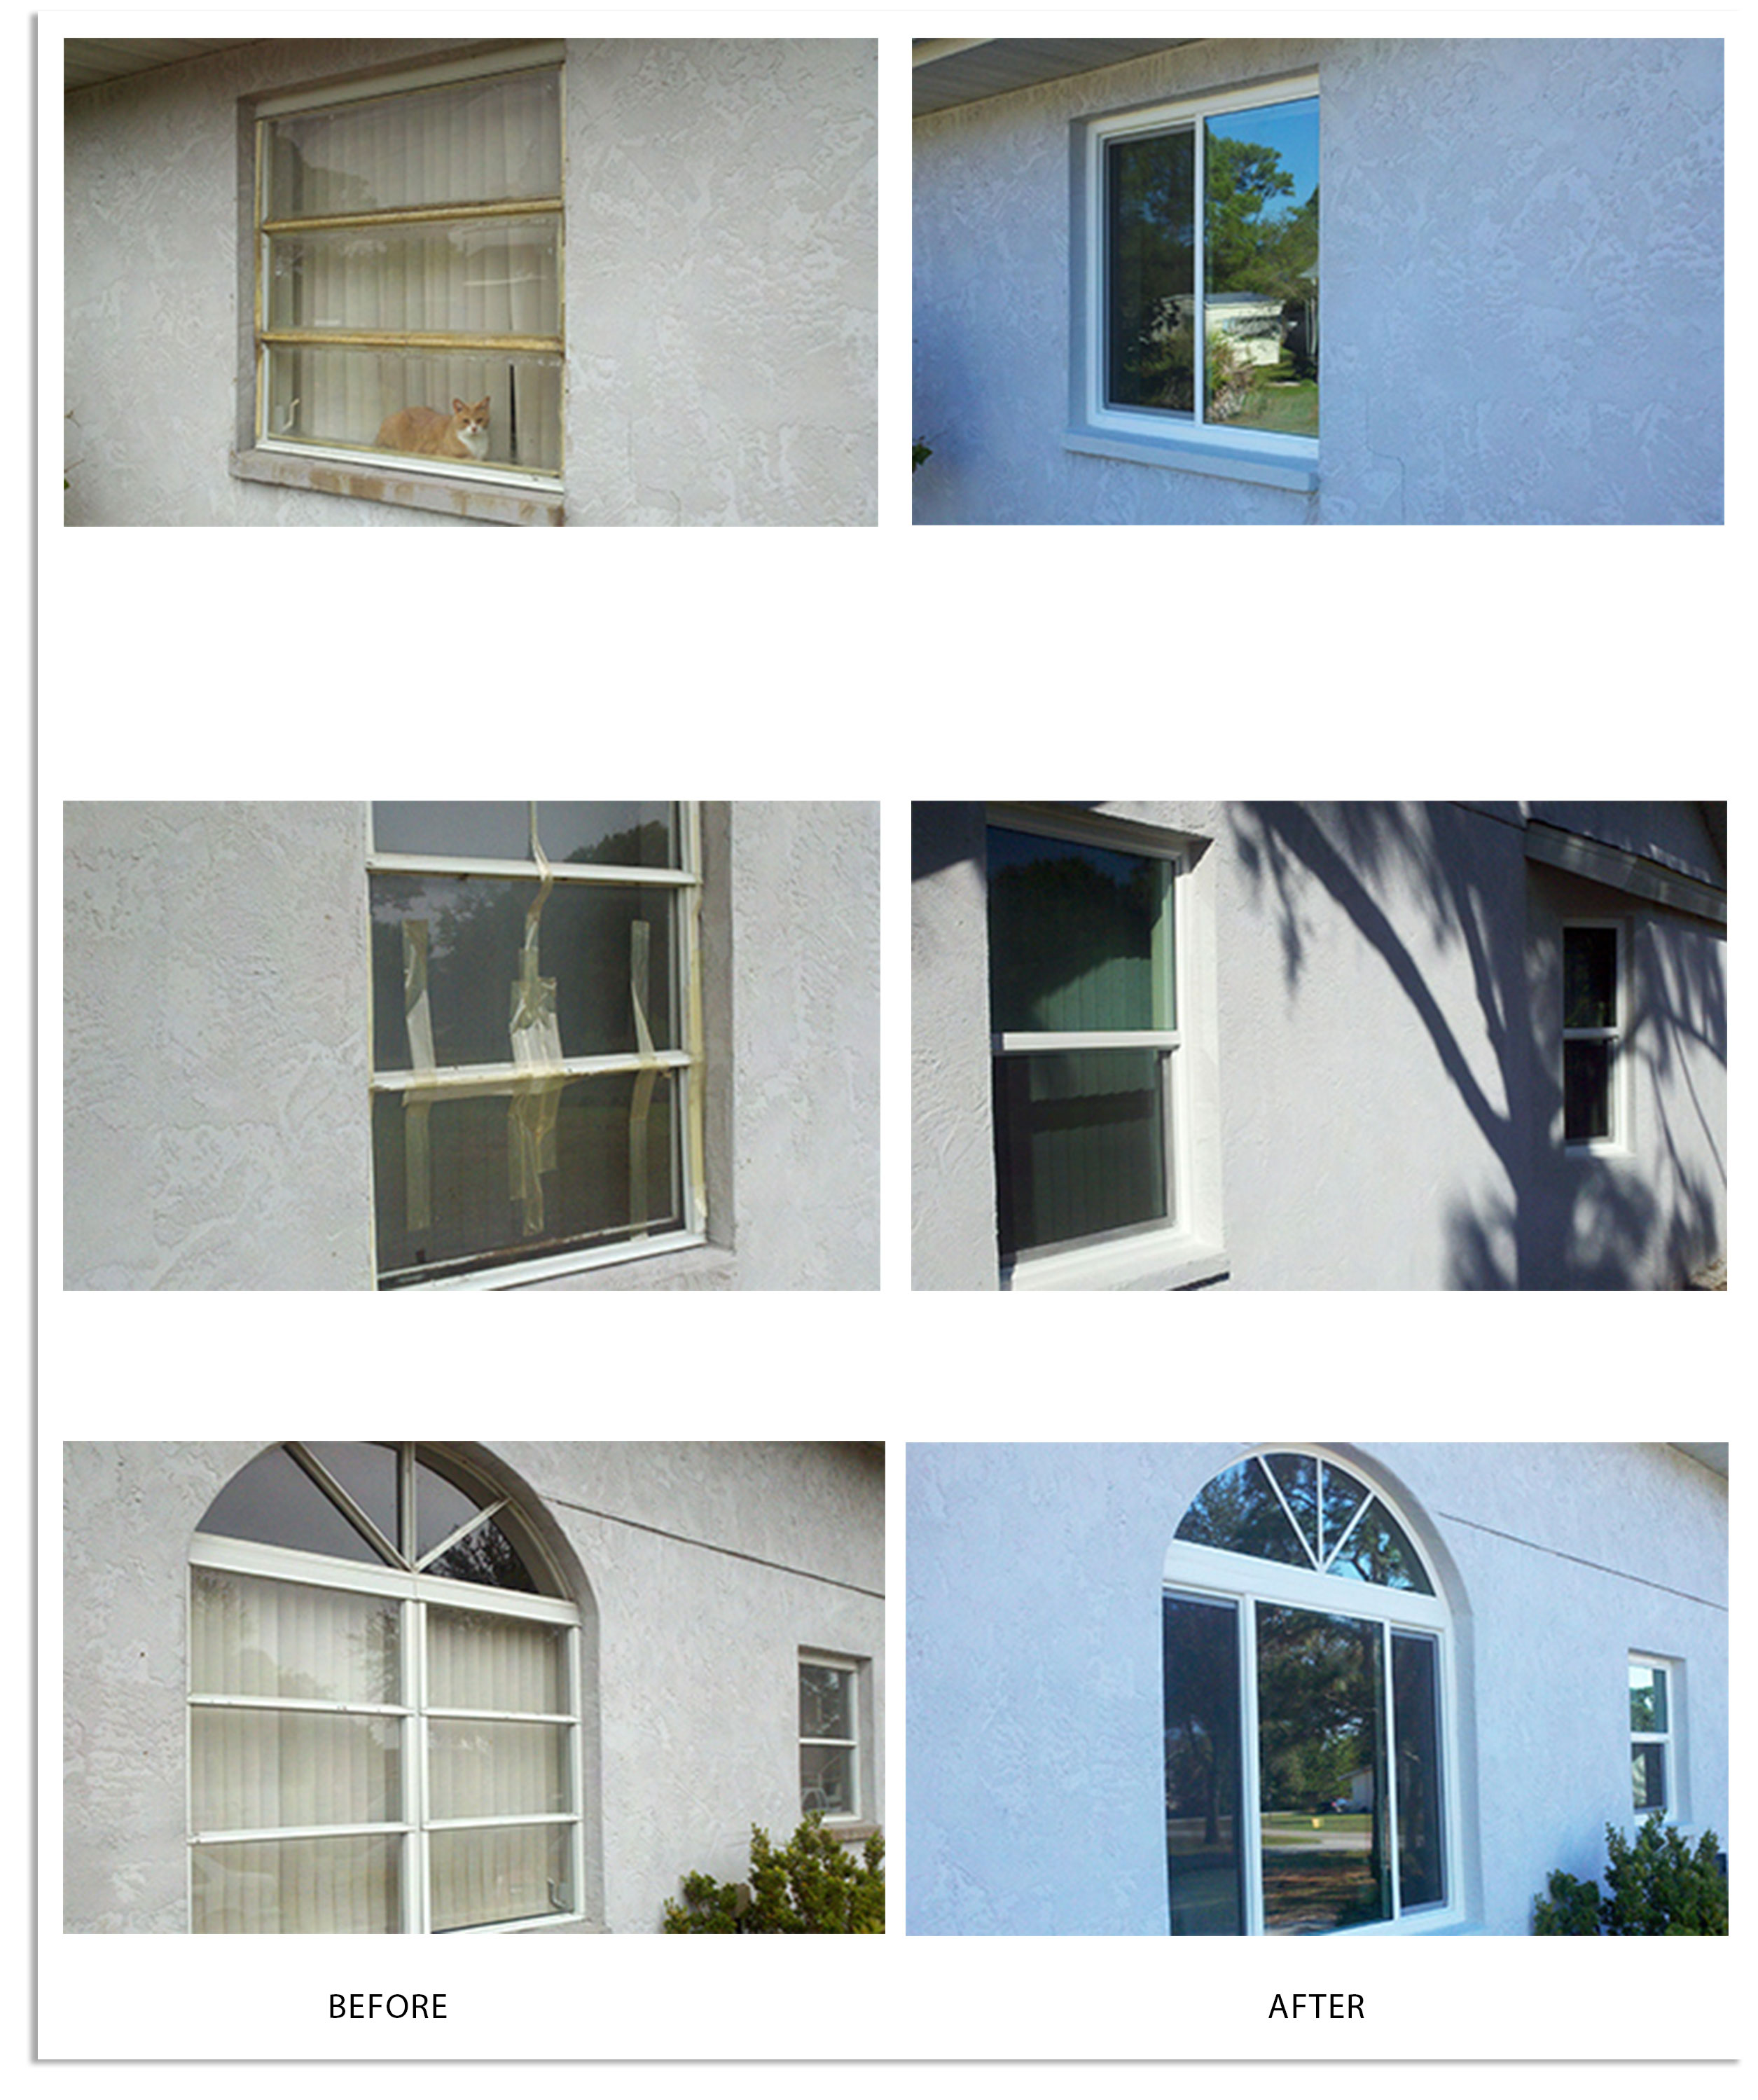 take a look at some lbg window replacement before after